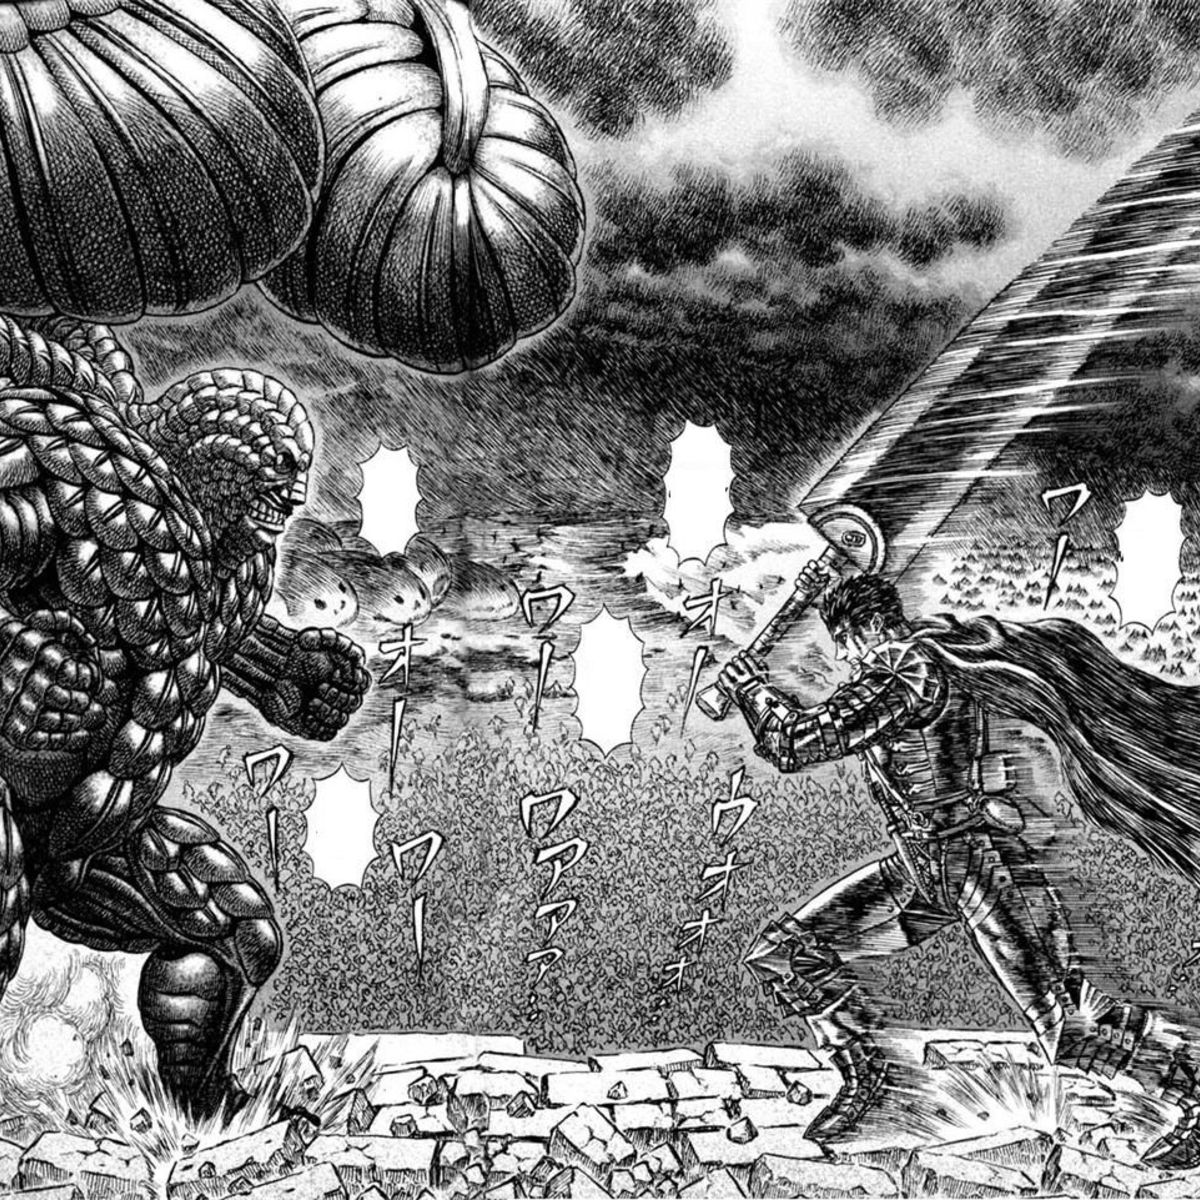 Berserk: A Beginner's Guide To A Manga And Anime Legend